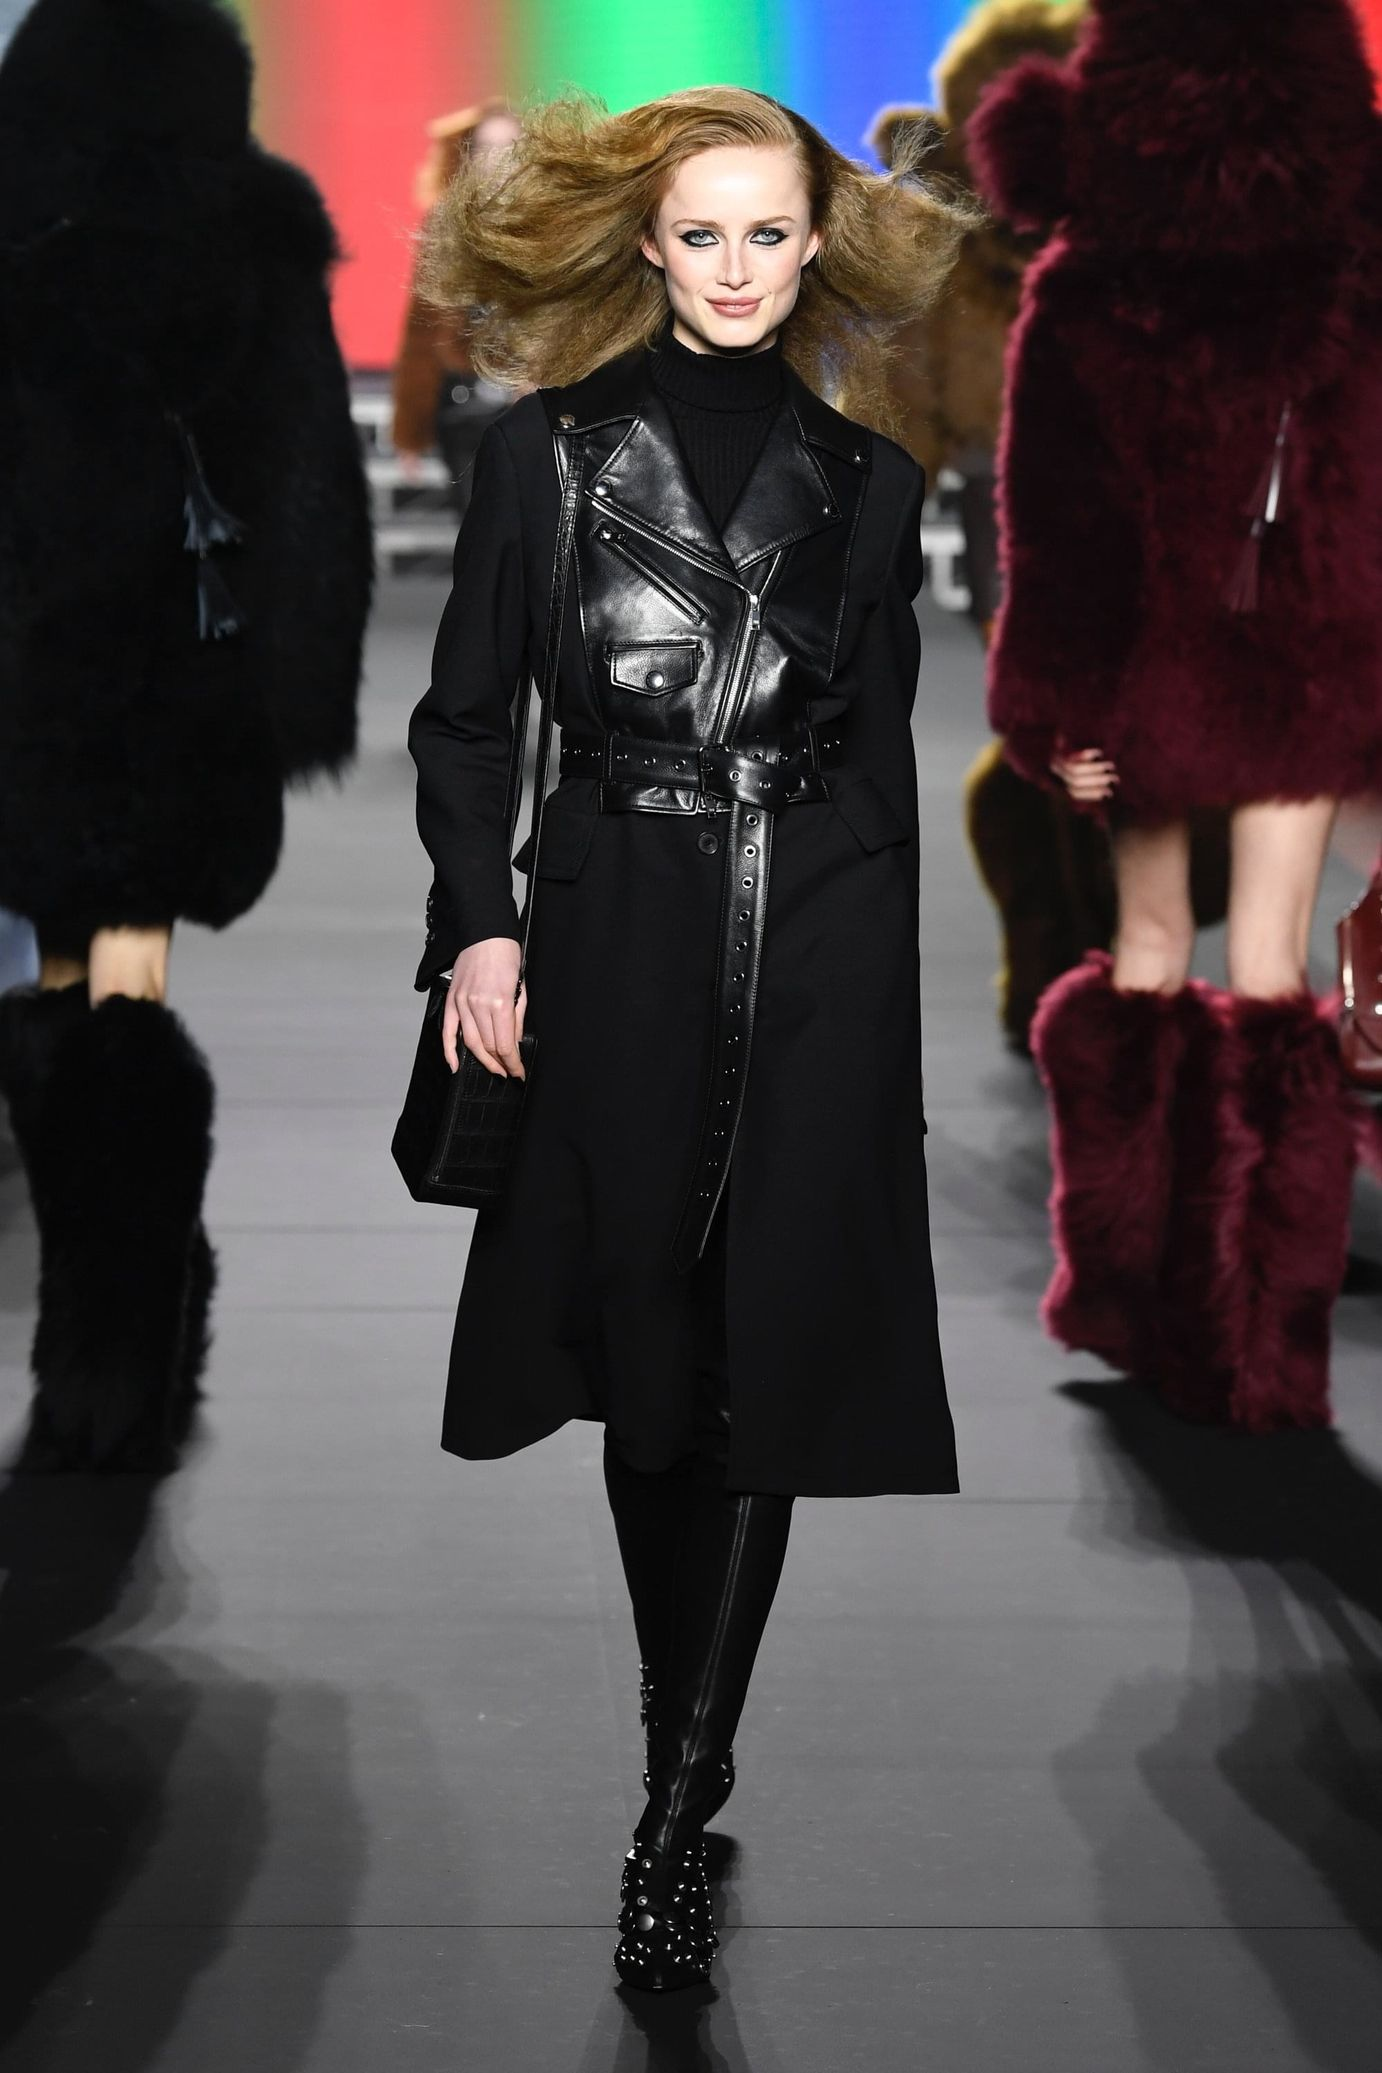 d756e517bc1 Sonia Rykiel Fall/Winter 2018-2019 READY-TO-WEAR Fashion Show ...